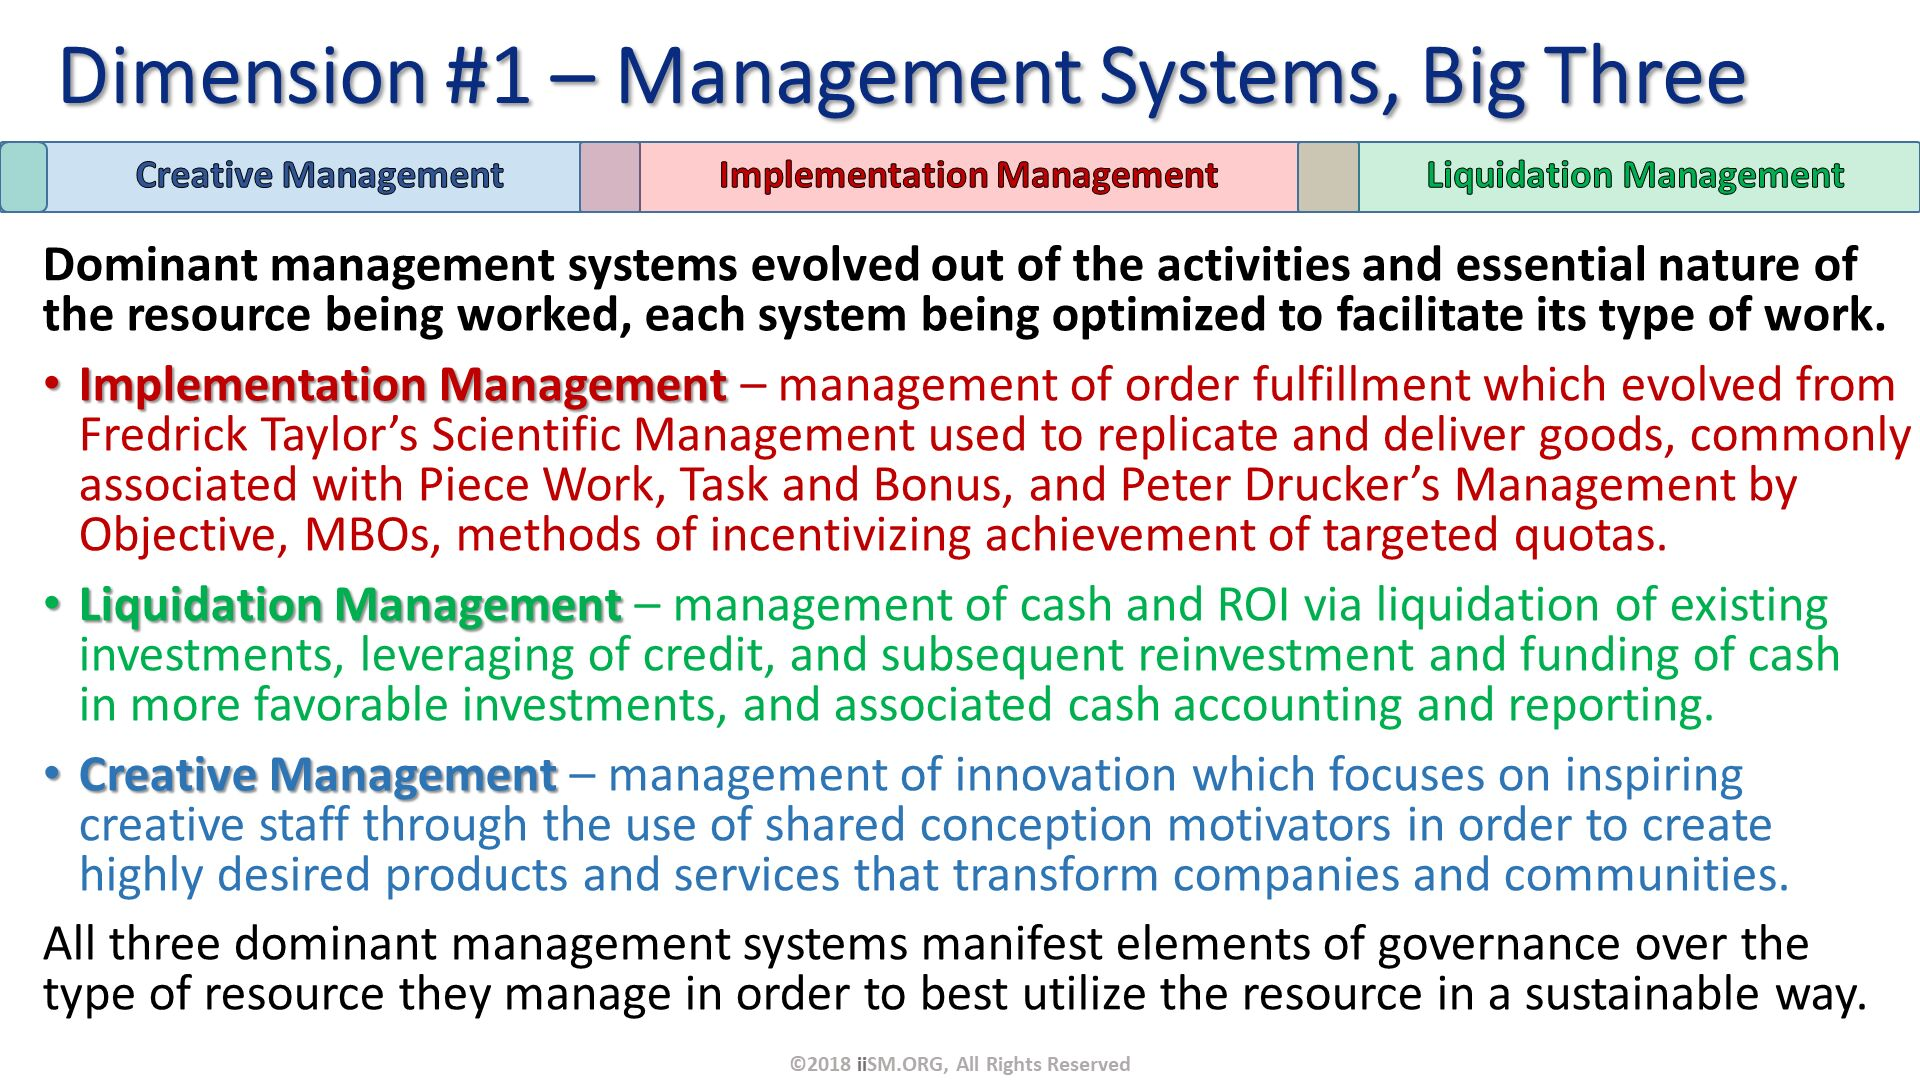 Dominant management systems evolved out of the activities and essential nature of the resource being worked, each system being optimized to facilitate its type of work.  Implementation Management – management of order fulfillment which evolved from Fredrick Taylor's Scientific Management used to replicate and deliver goods, commonly associated with Piece Work, Task and Bonus, and Peter Drucker's Management by Objective, MBOs, methods of incentivizing achievement of targeted quotas. Liquidation Management – management of cash and ROI via liquidation of existing investments, leveraging of credit, and subsequent reinvestment and funding of cash in more favorable investments, and associated cash accounting and reporting.  Creative Management – management of innovation which focuses on inspiring creative staff through the use of shared conception motivators in order to create highly desired products and services that transform companies and communities. All three dominant management systems manifest elements of governance over the type of resource they manage in order to best utilize the resource in a sustainable way. . Dimension #1 – Management Systems, Big Three. ©2018 iiSM.ORG, All Rights Reserved.